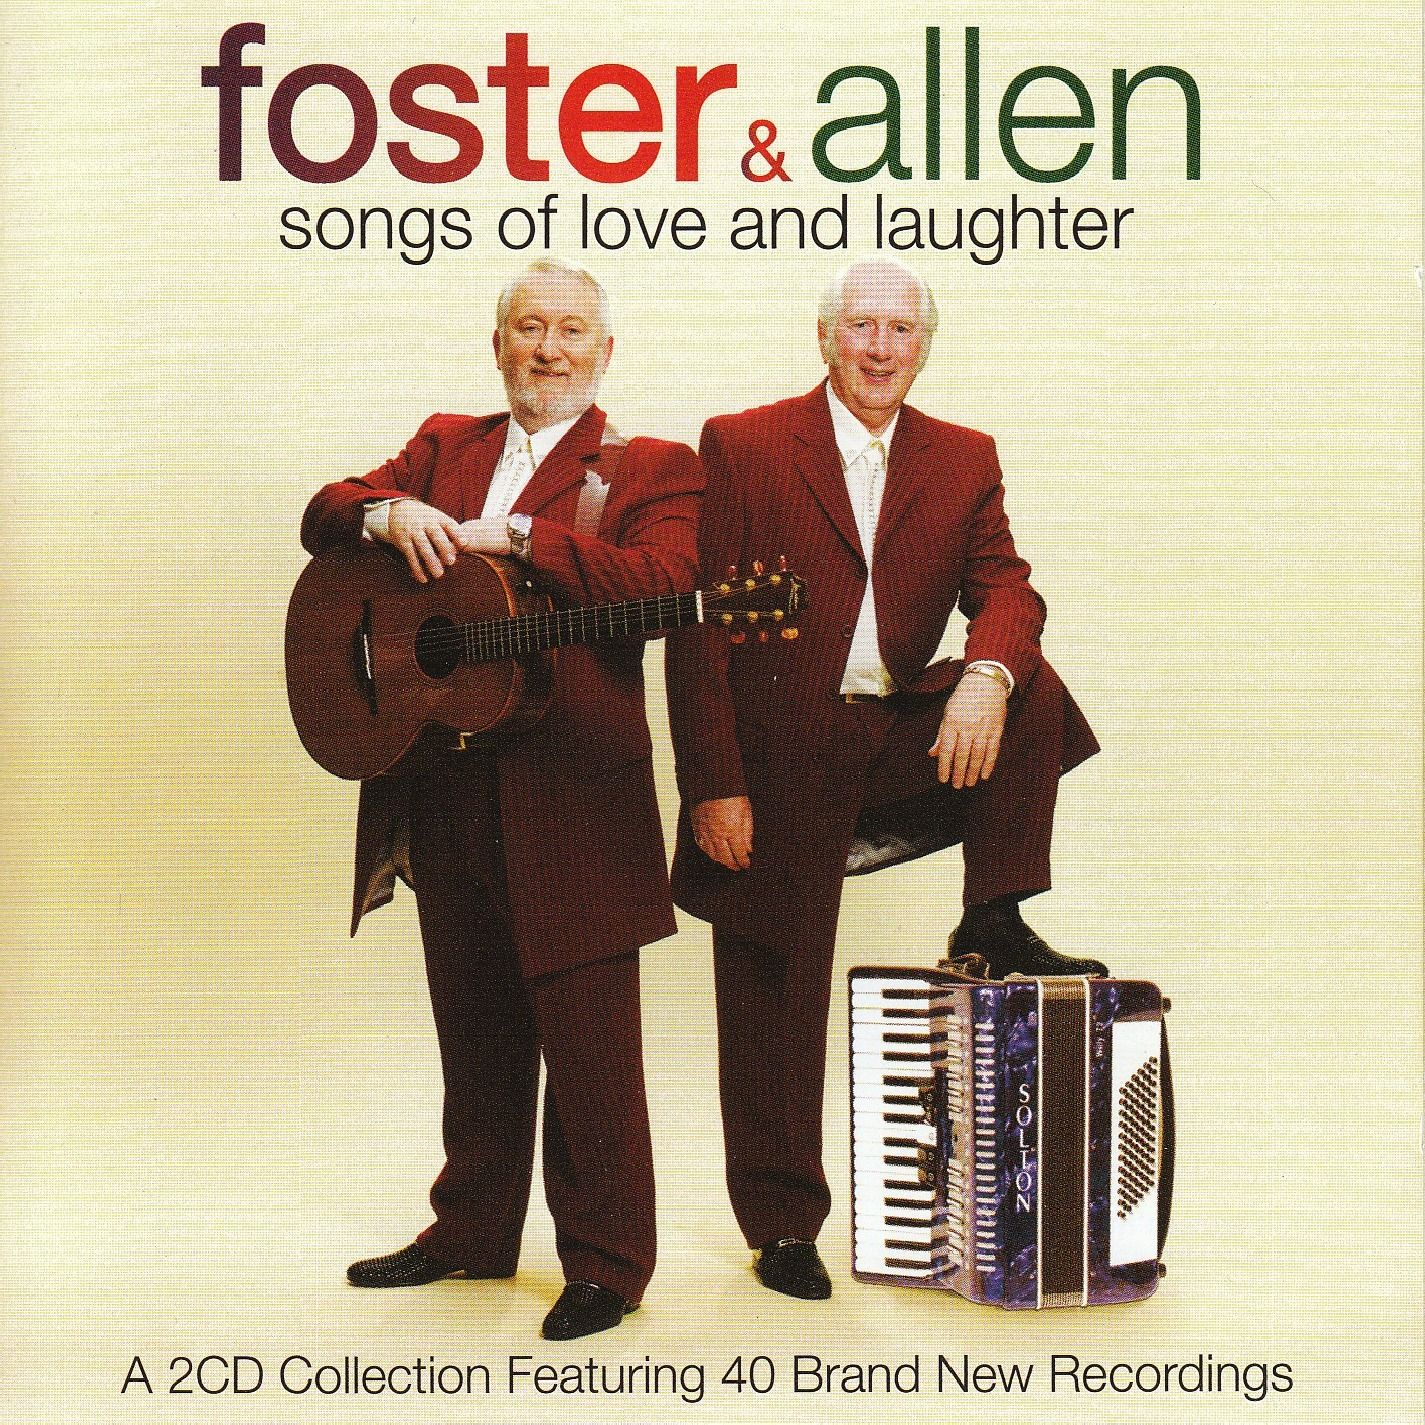 Foster & Allen - Songs Of Love And Laughter album cover